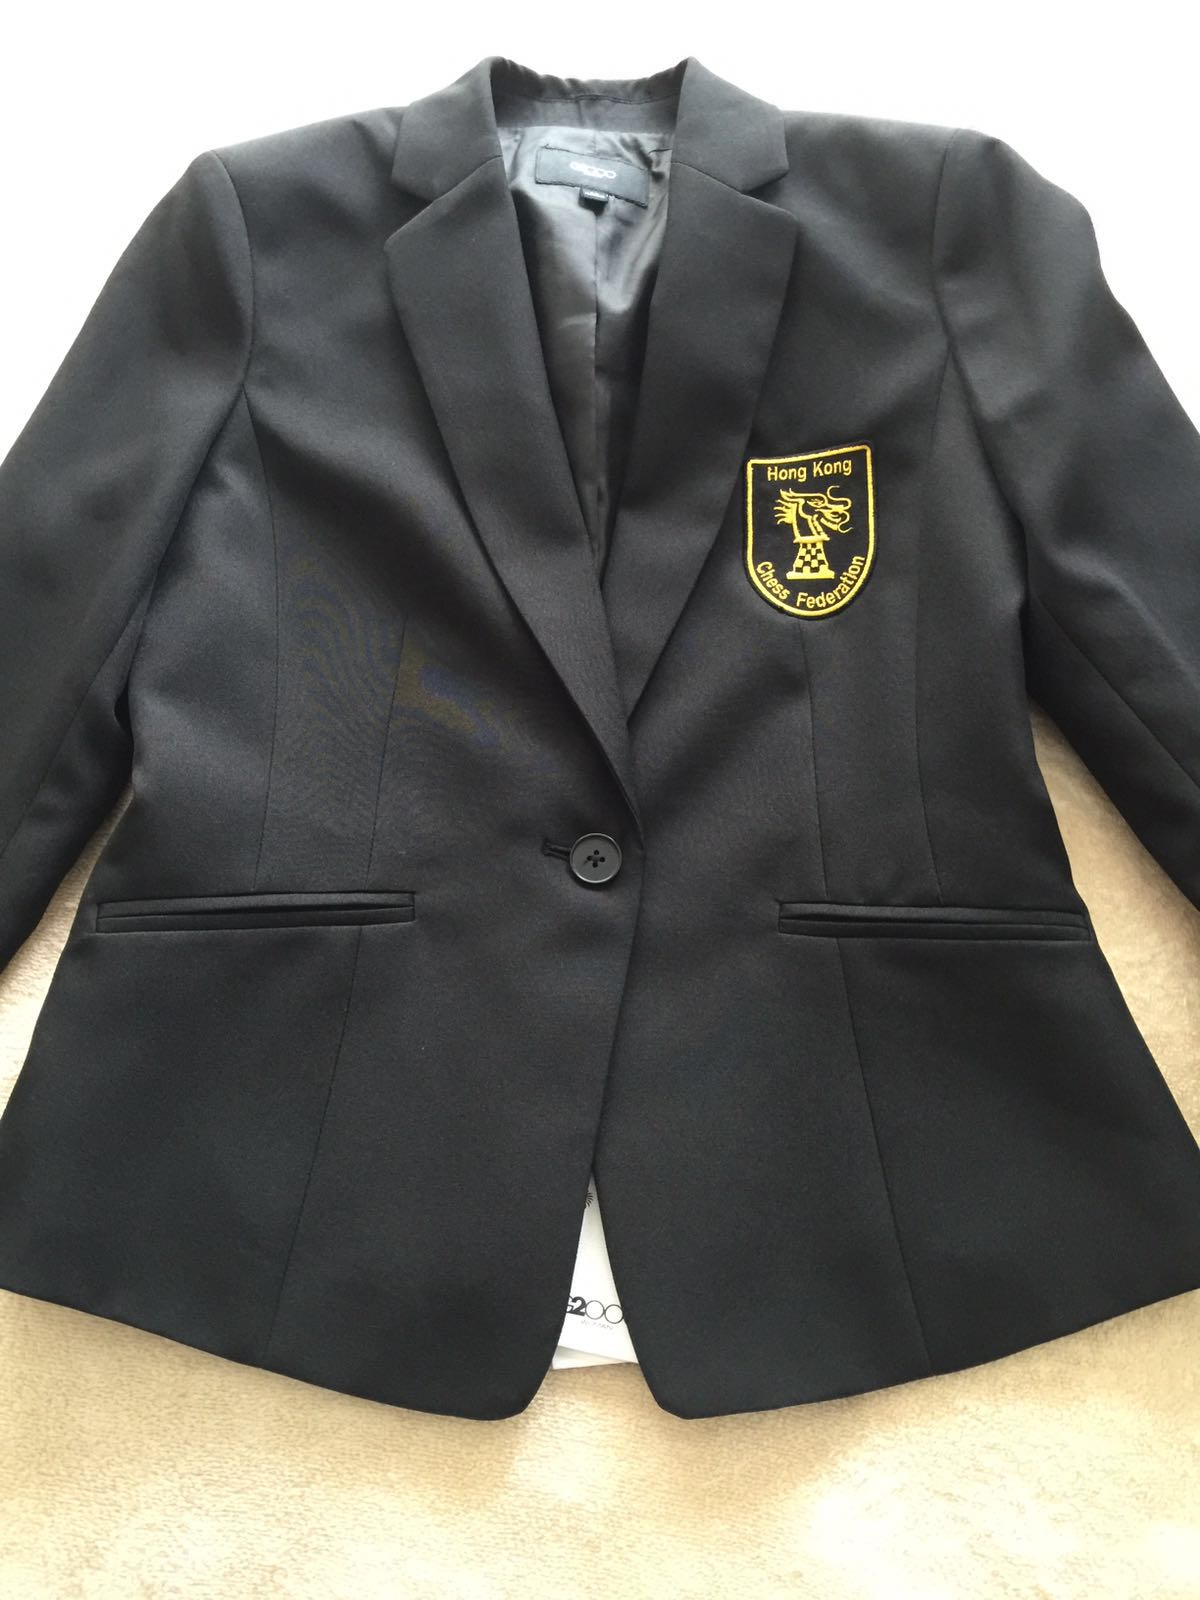 hong-kong-chess-federation-jacket-uniform